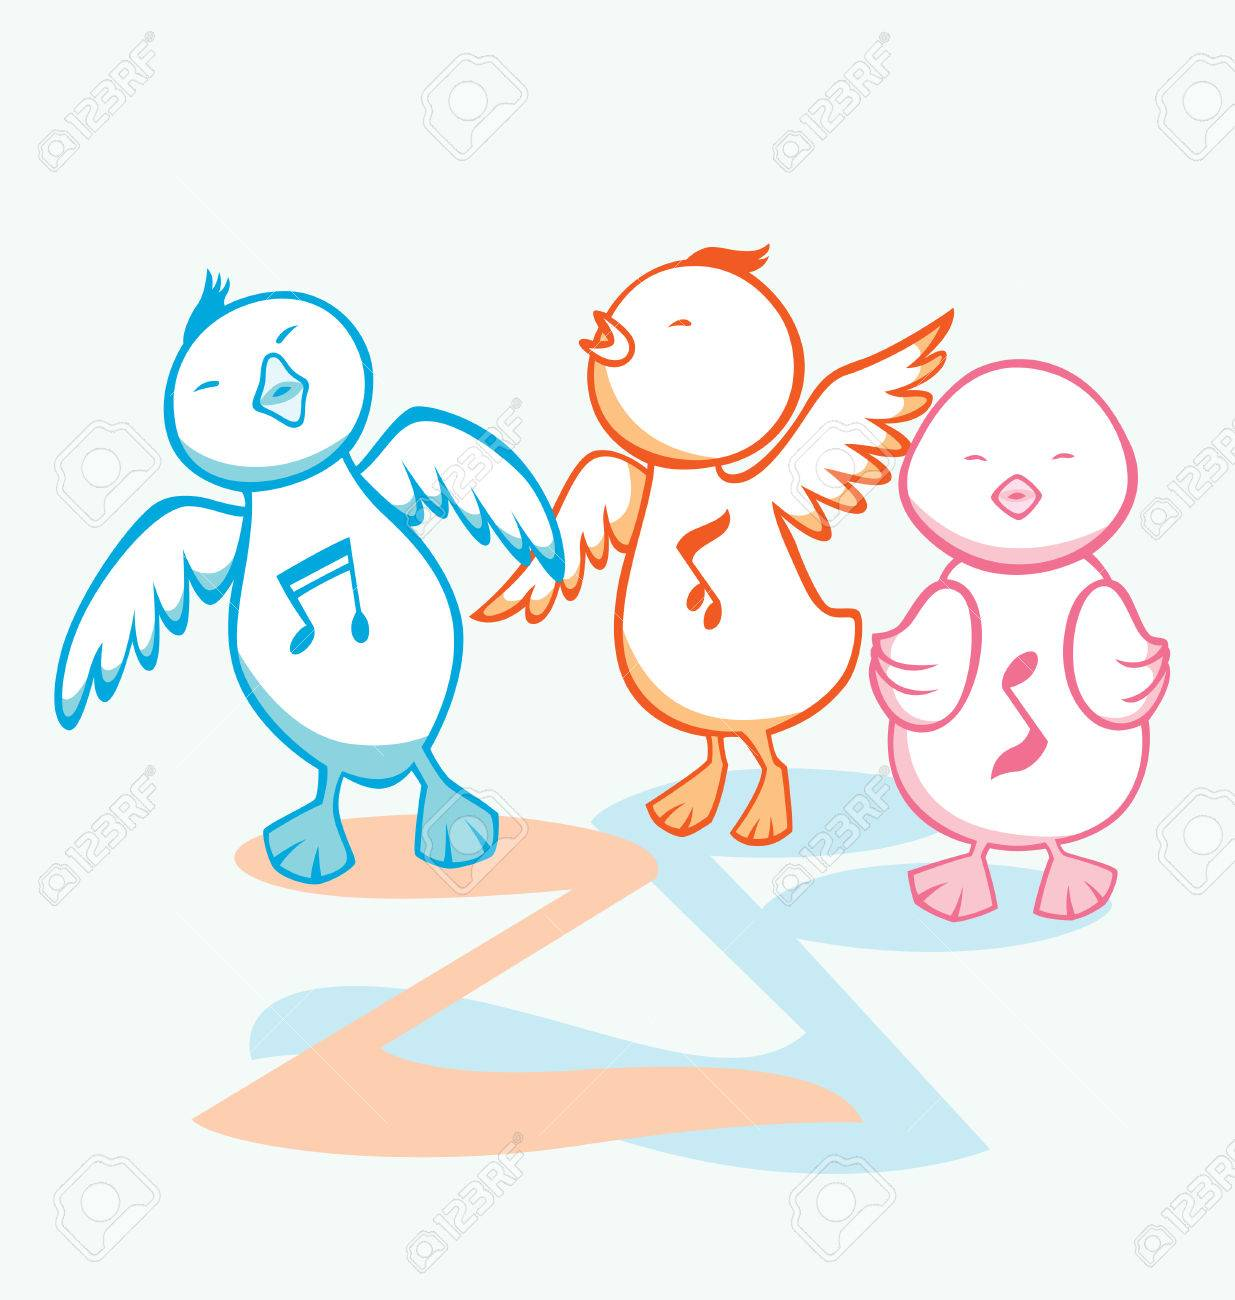 Three chicks dancing and singing with music notes as decoration. Stock Vector - 6672748